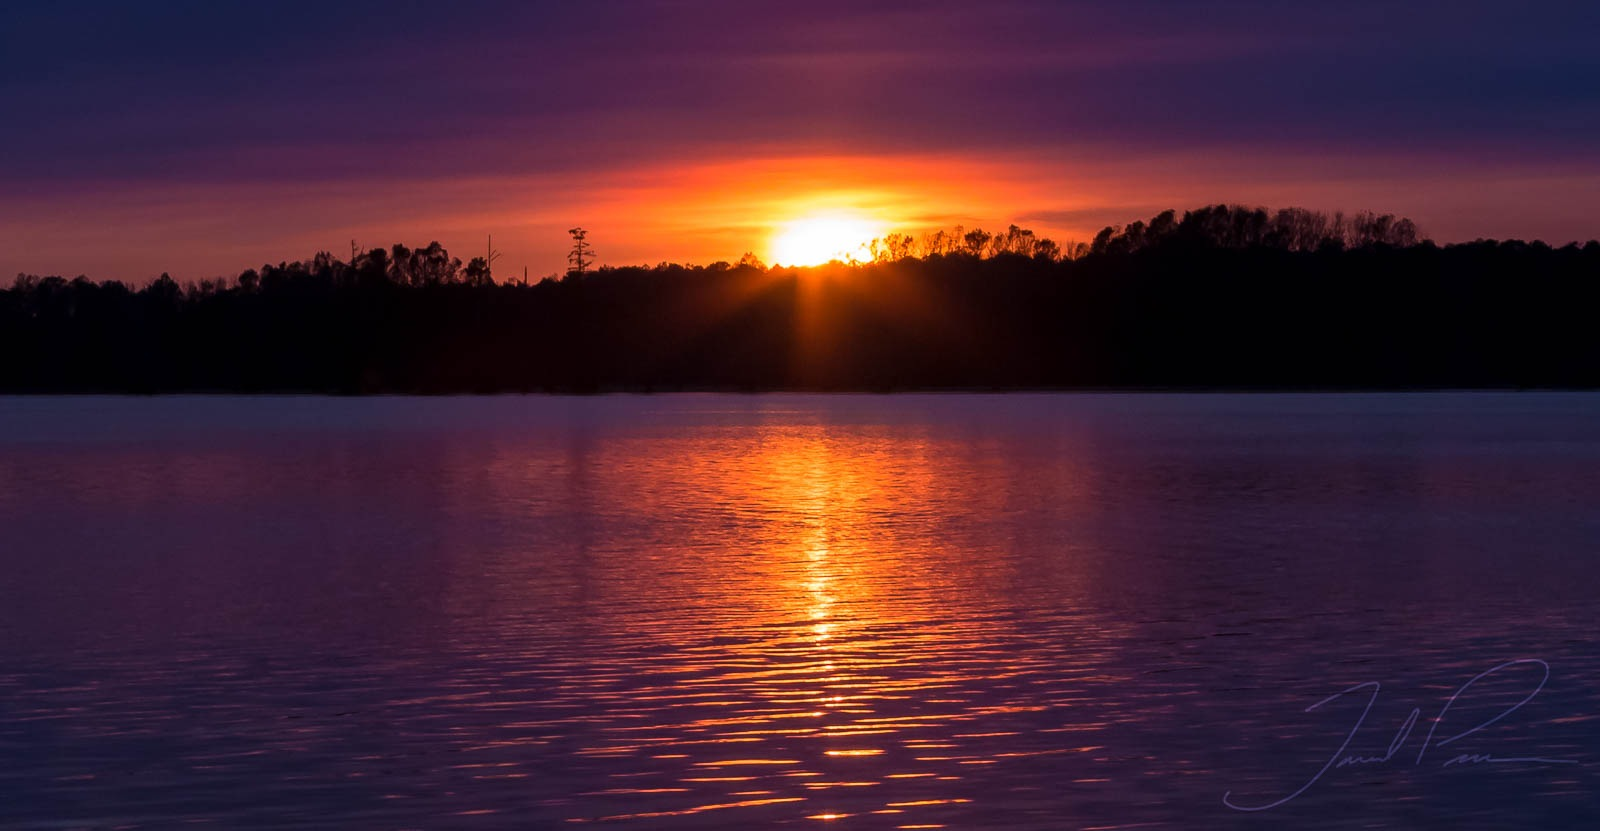 Sunset over Santee Cooper by Jared Pease